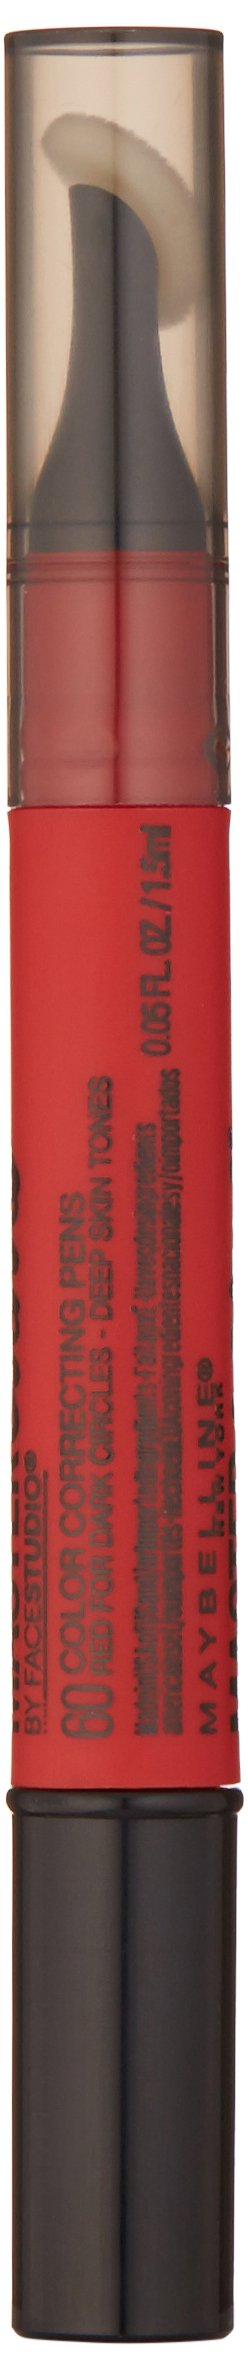 Maybelline New York Master Camo Color Correcting Pen, Red For Dark Circles, deep, 0.05 fl. oz.